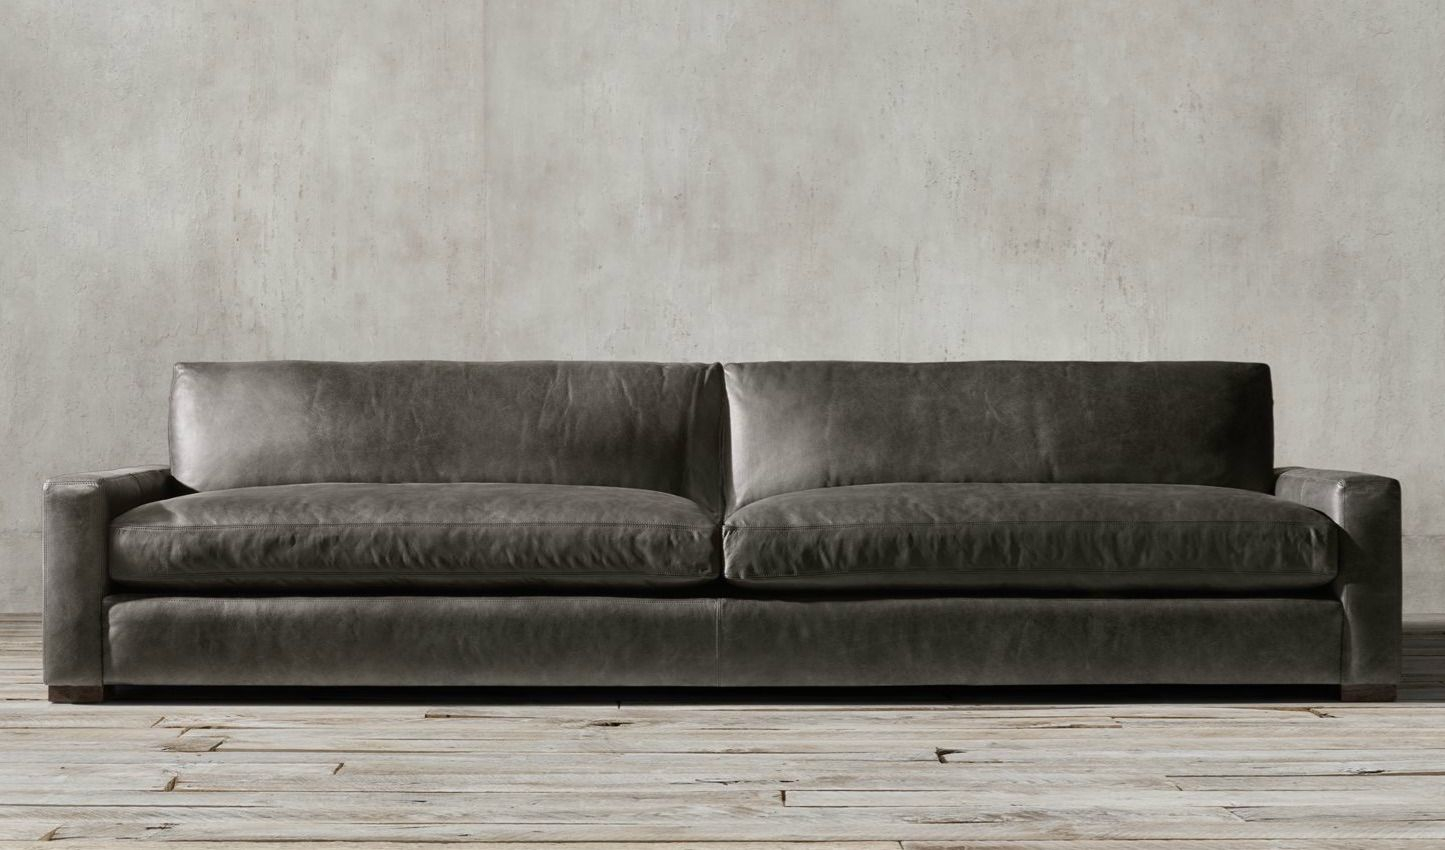 Maxwell Leather Sofa Leather Sofa Sofa Sofa Furniture within measurements 1445 X 850